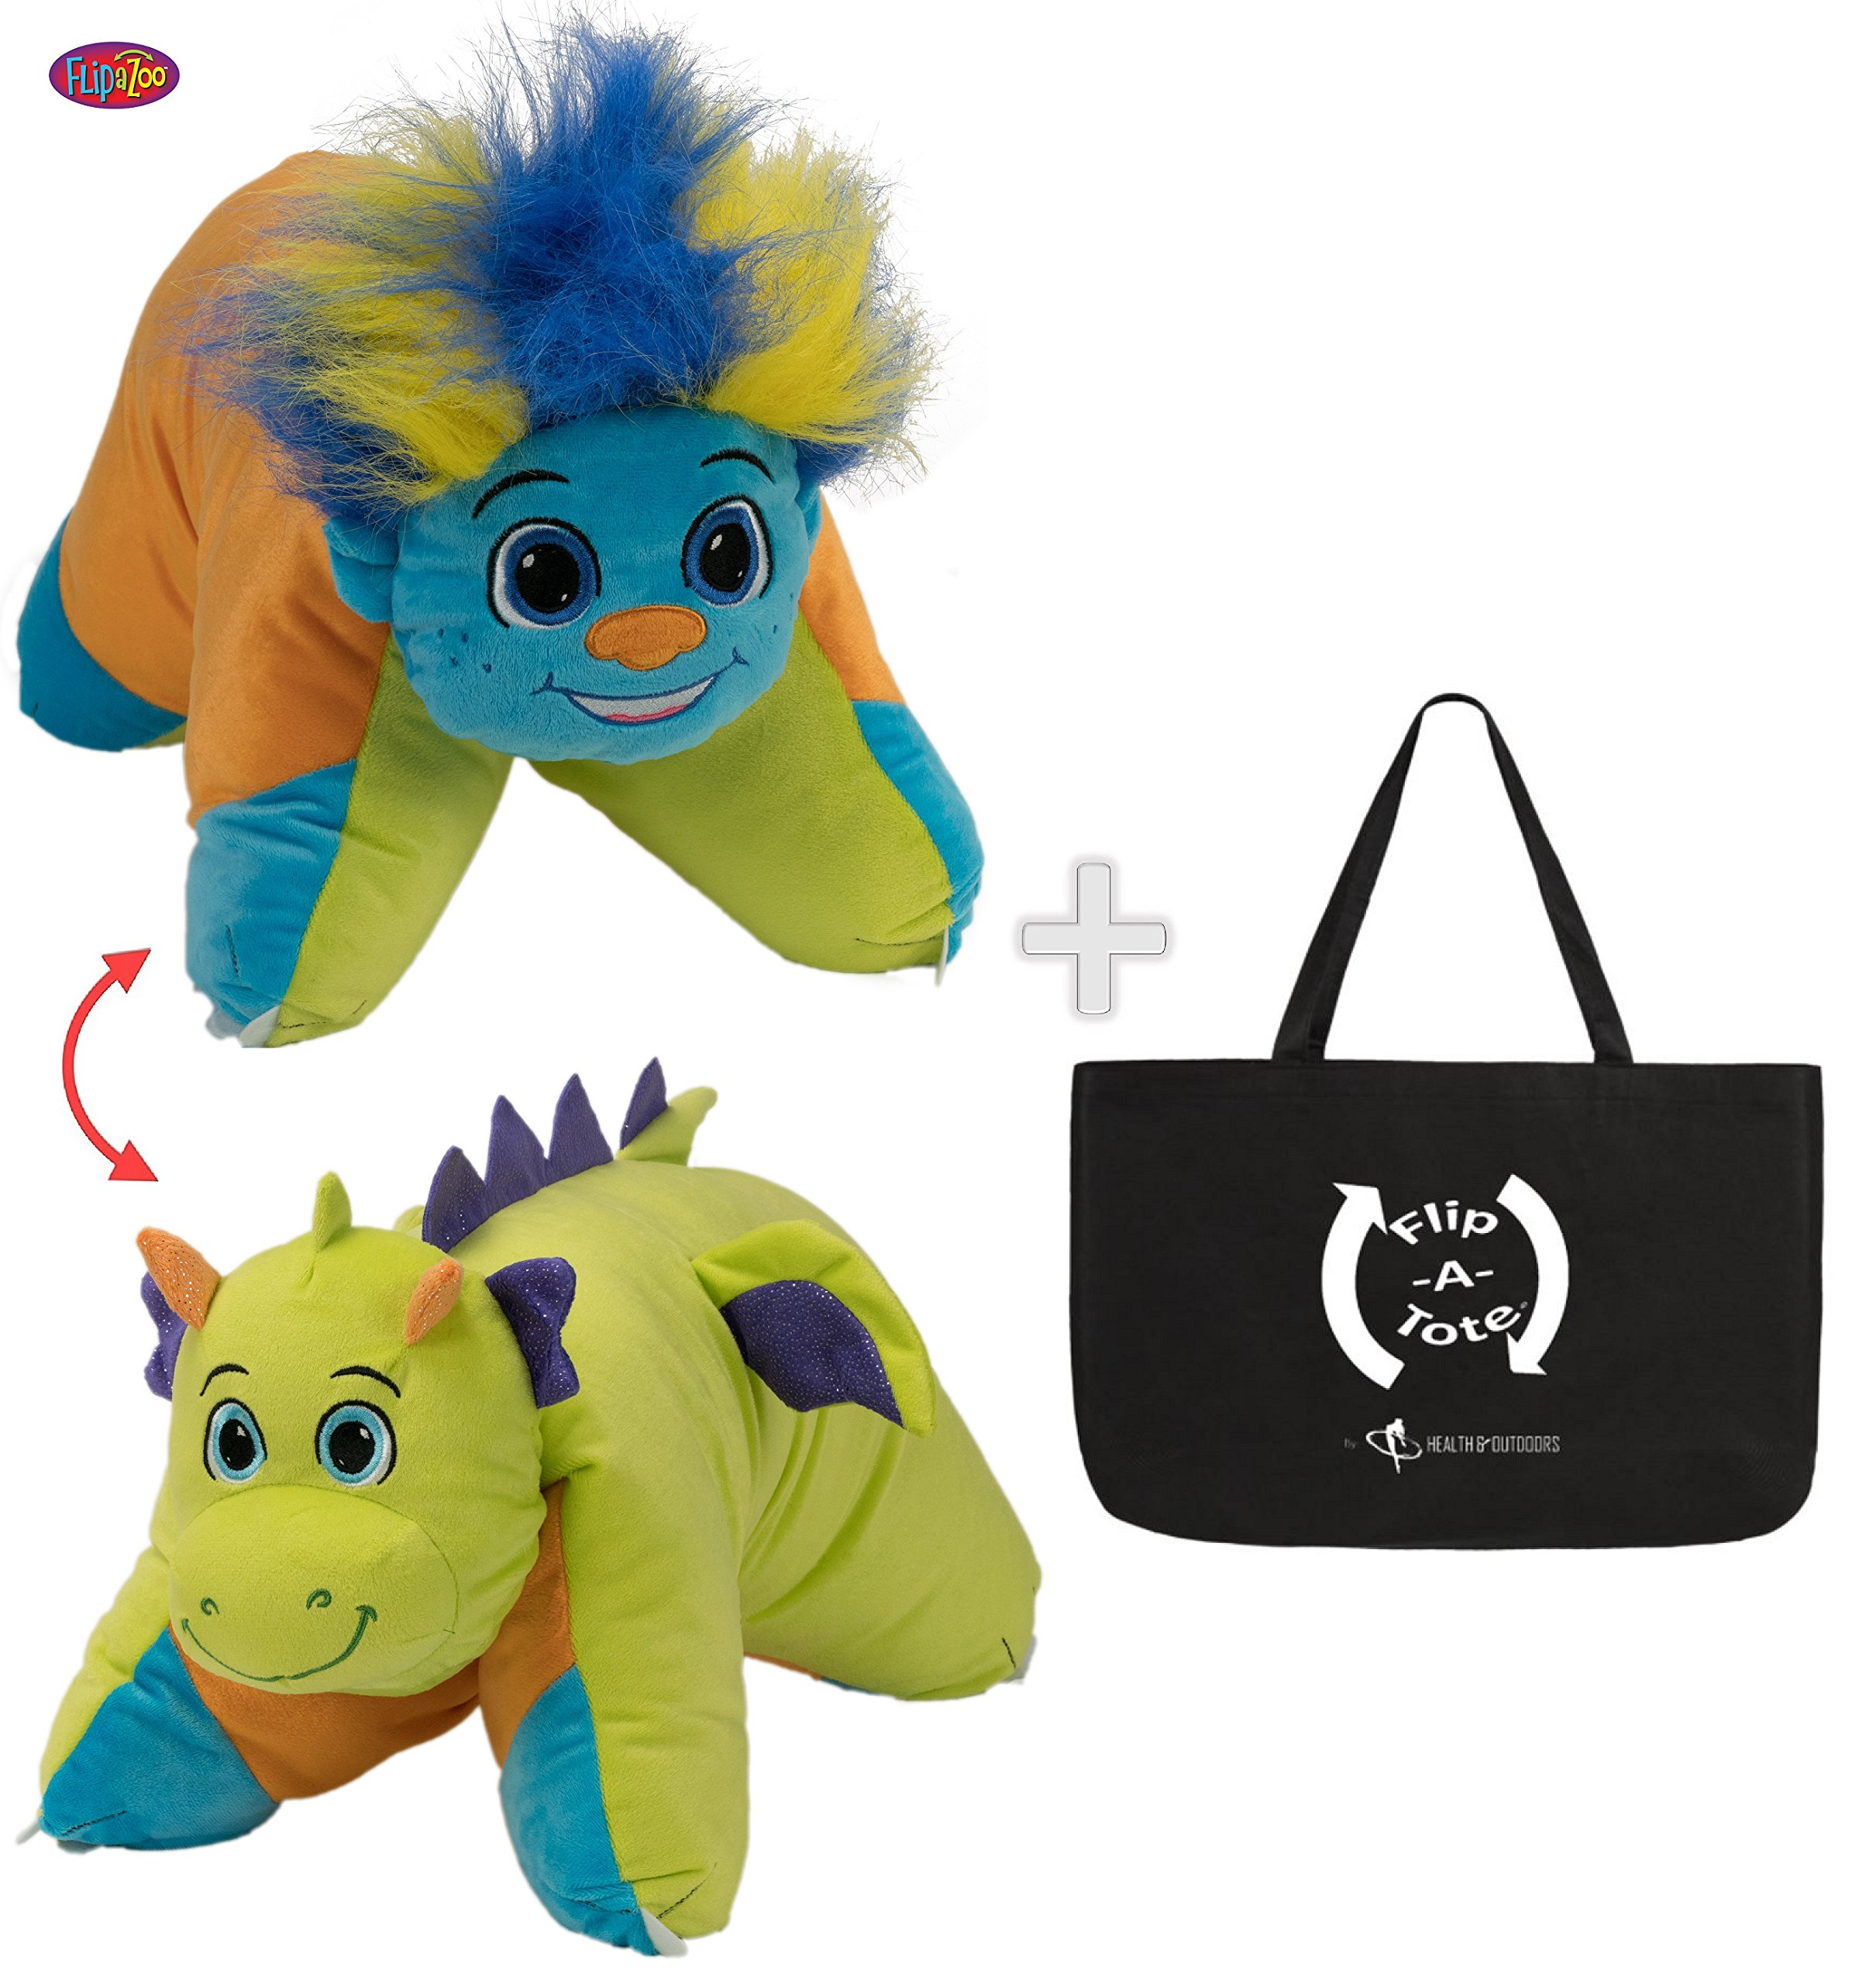 Flipazoo Flip 'N' Play Friends Plush Toy & Pillow in 1 ( Dragon / Colorful Troll ) & EXCLUSIVE FlipaTote COMBO by Flip 'N' Play Friends